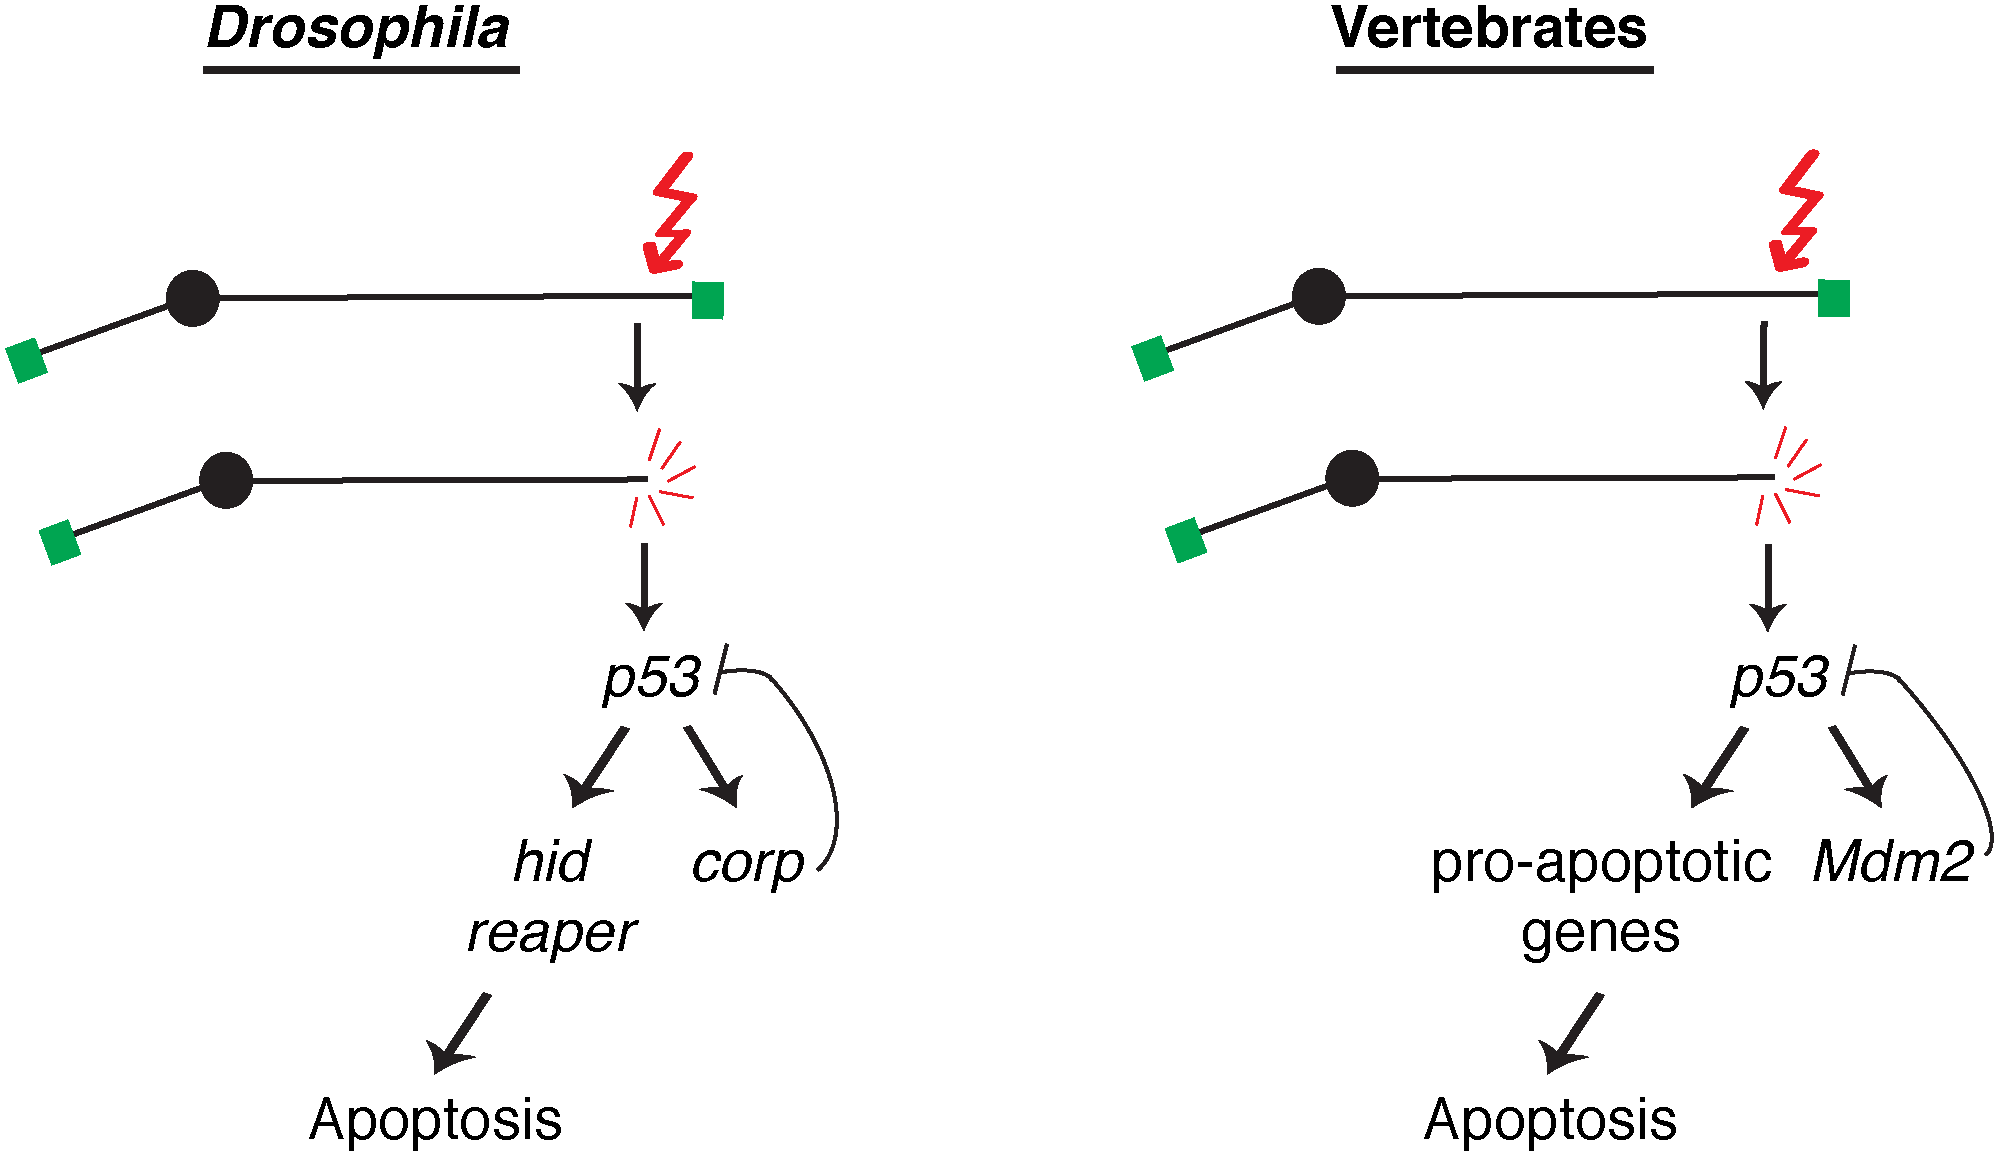 A comparison of competing pathways under P53 control in <i>Drosophila</i> and vertebrates.